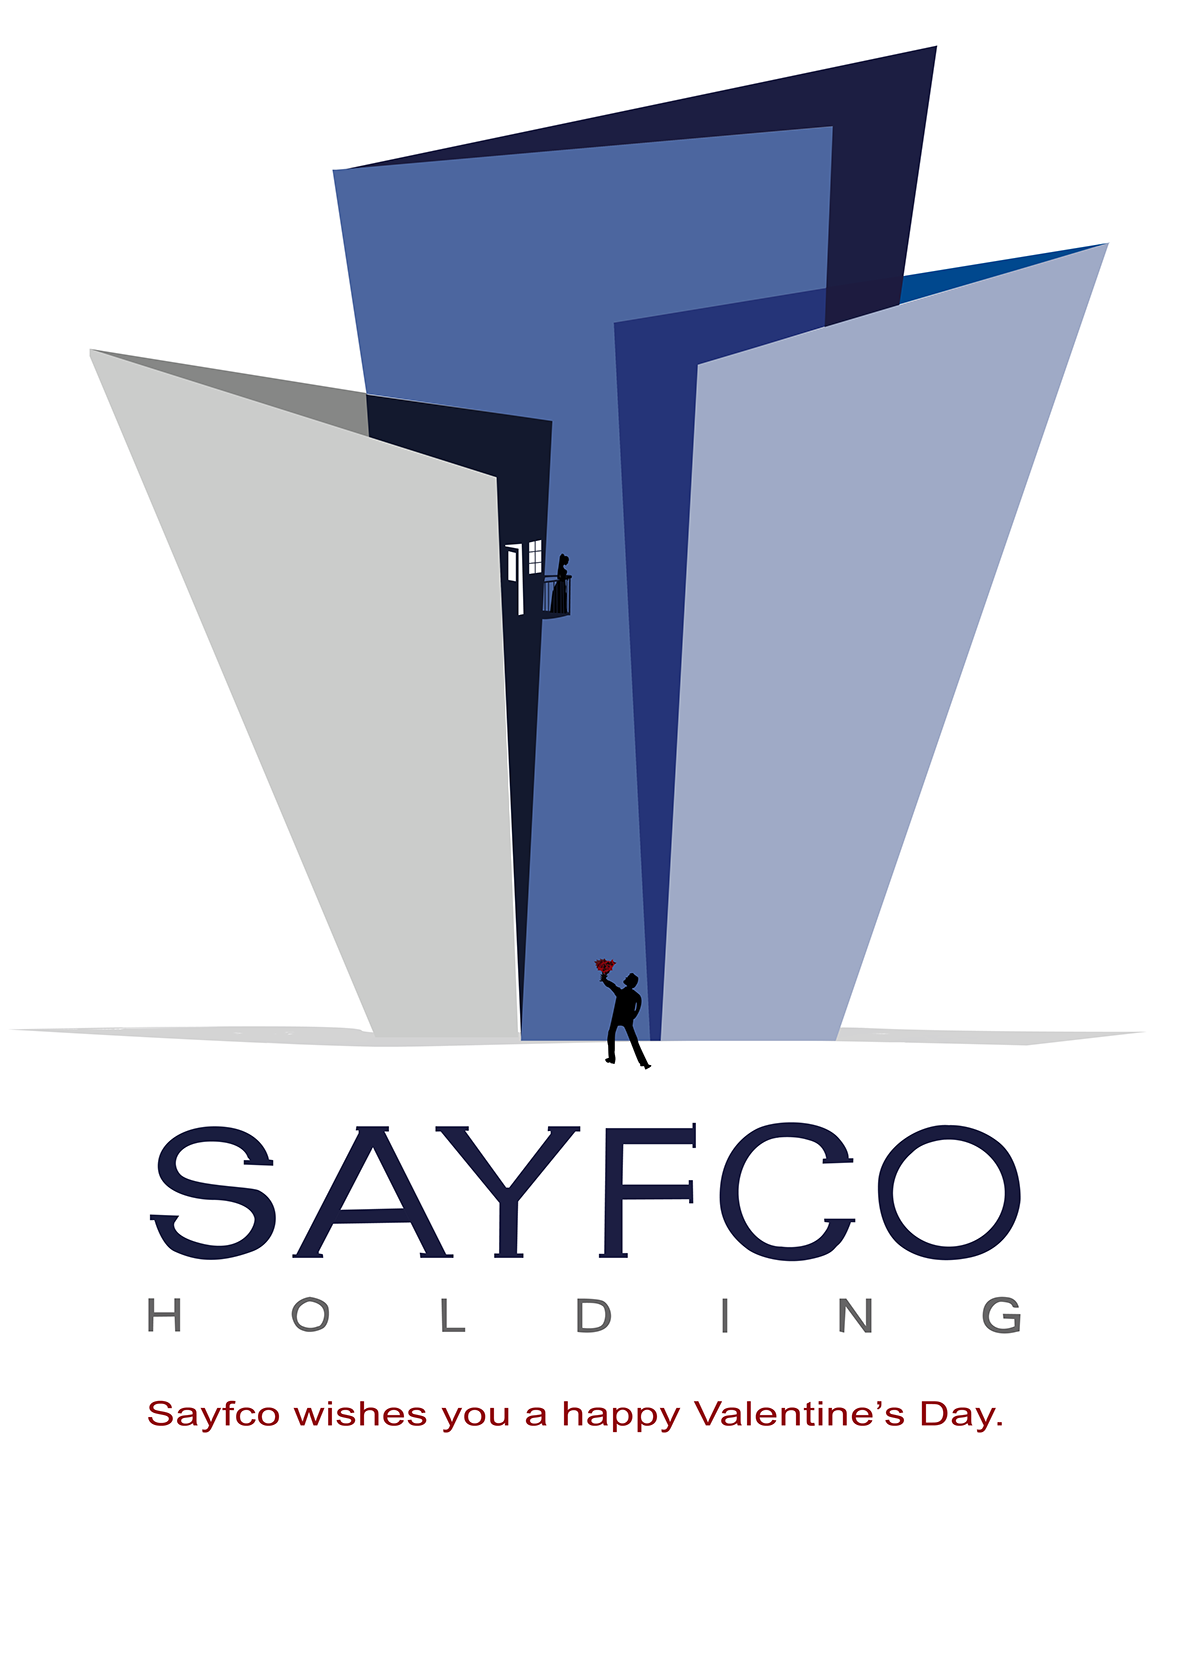 Sayfco Holding